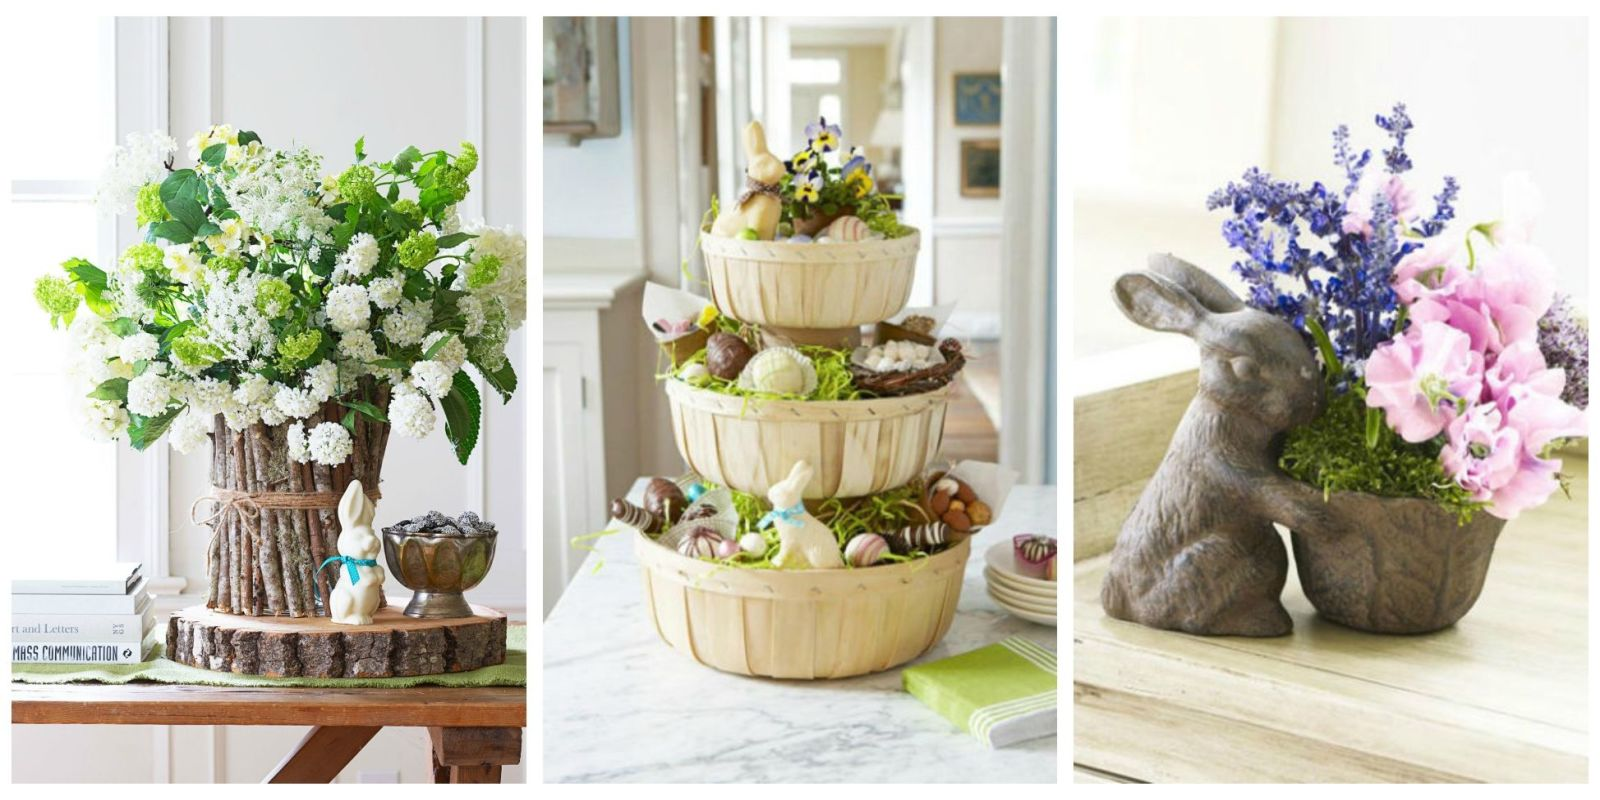 Best 70 Diy Easter Decorations Ideas For Homemade Easter This Month